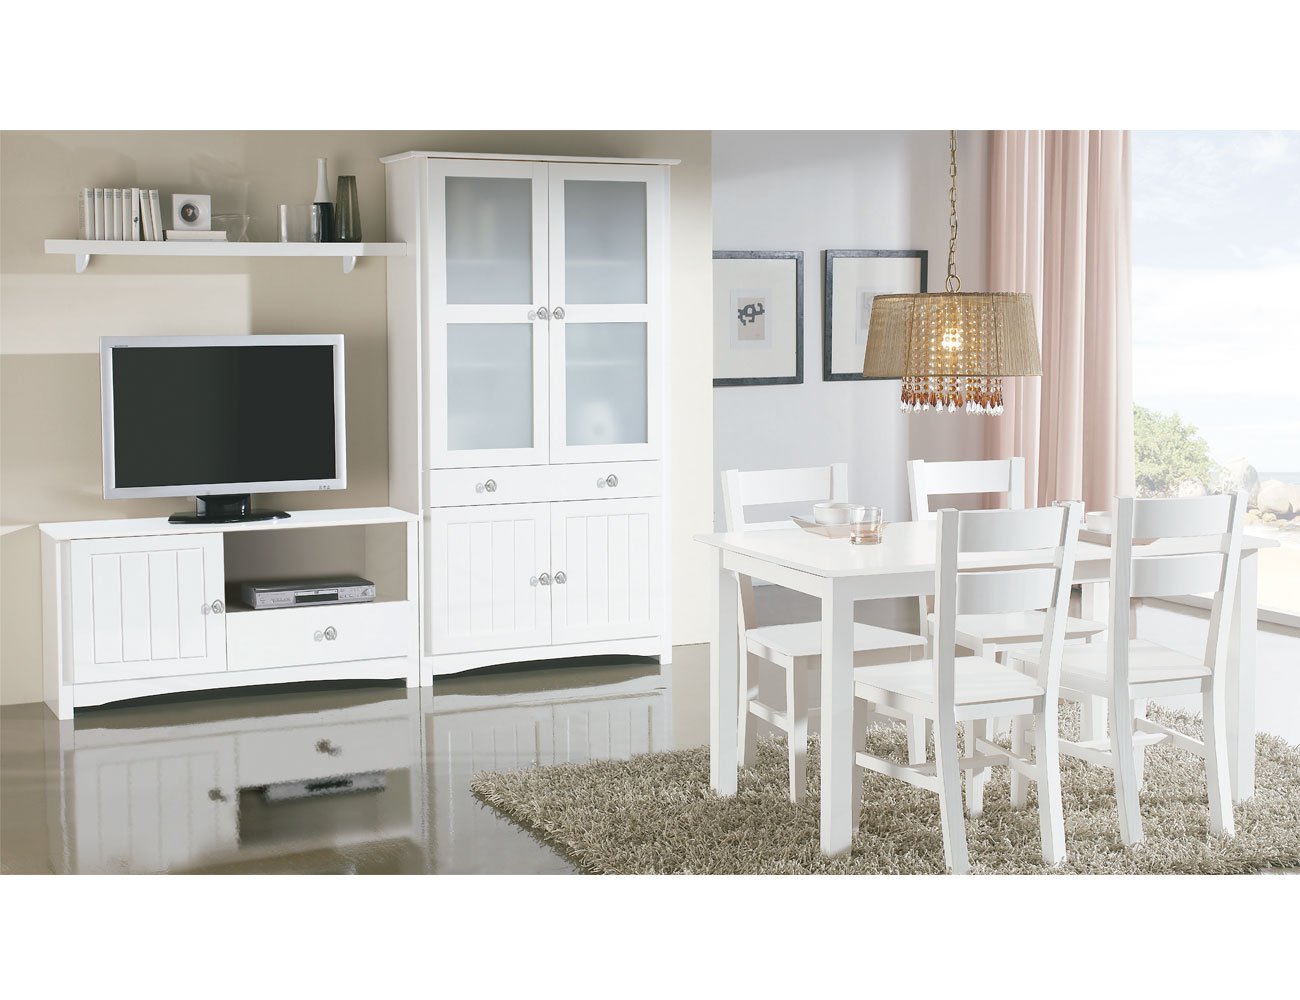 Sal n comedor con vitrina y mueble tv en madera color for Muebles de salon color blanco